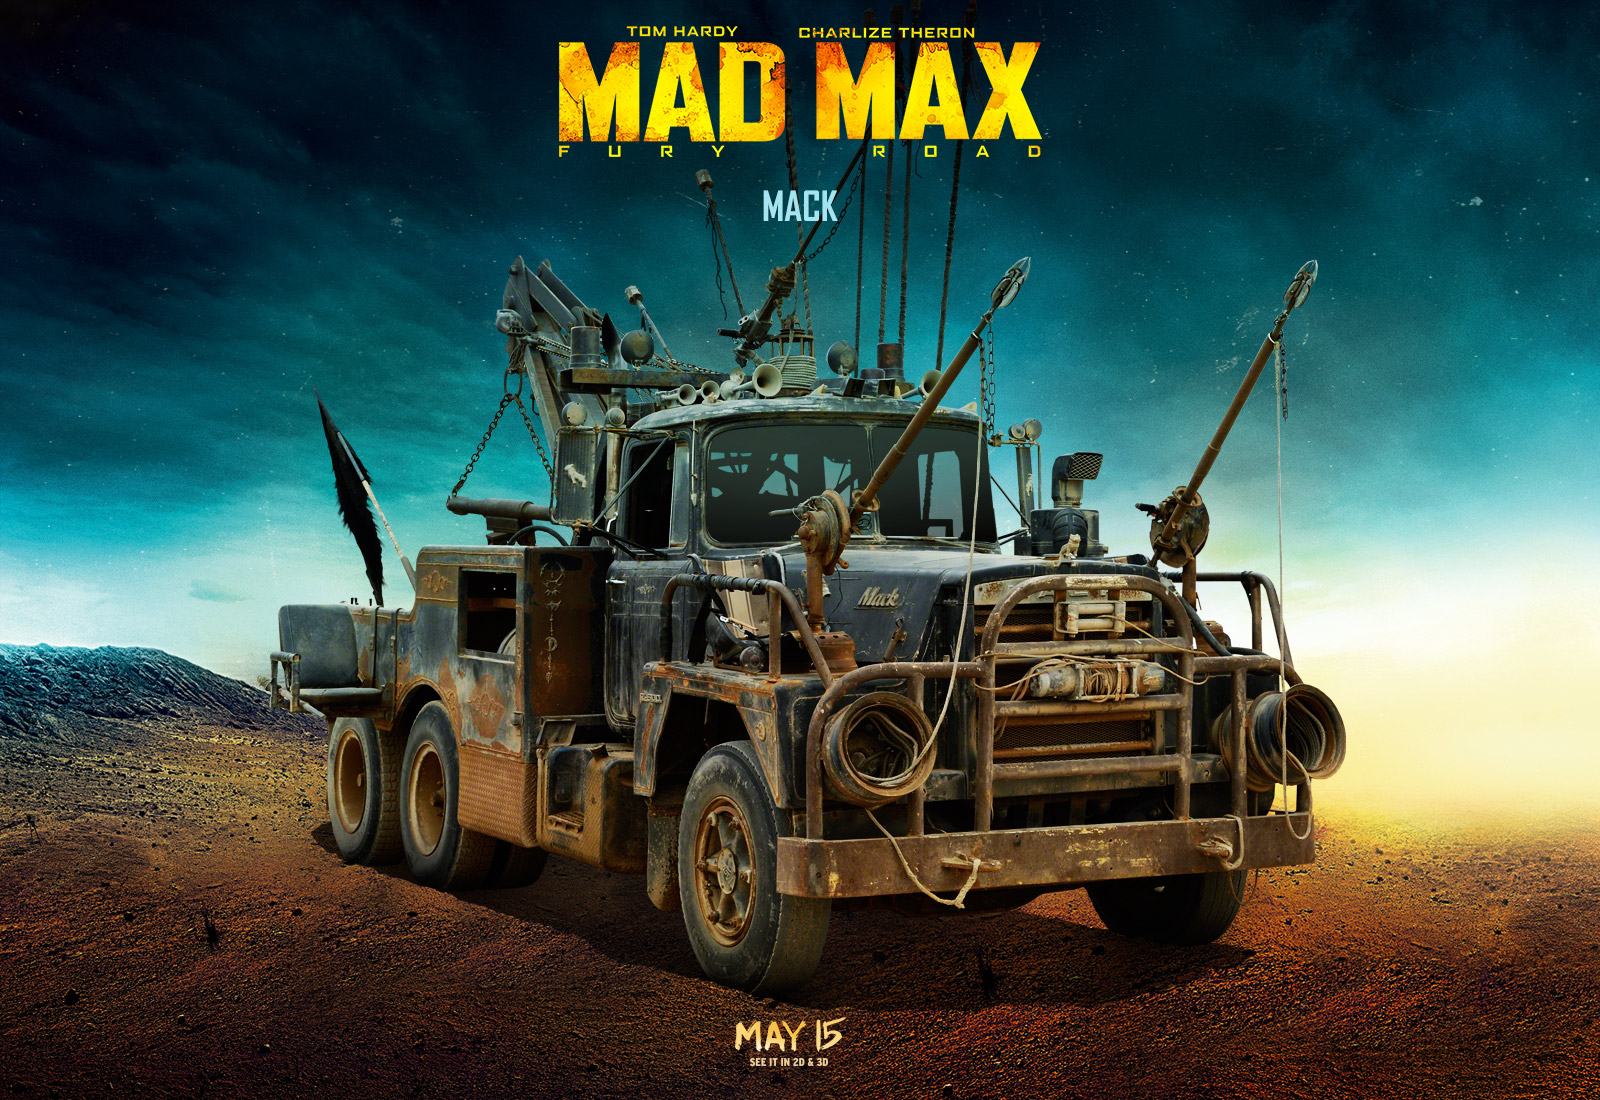 mad-max-fury-road-mack